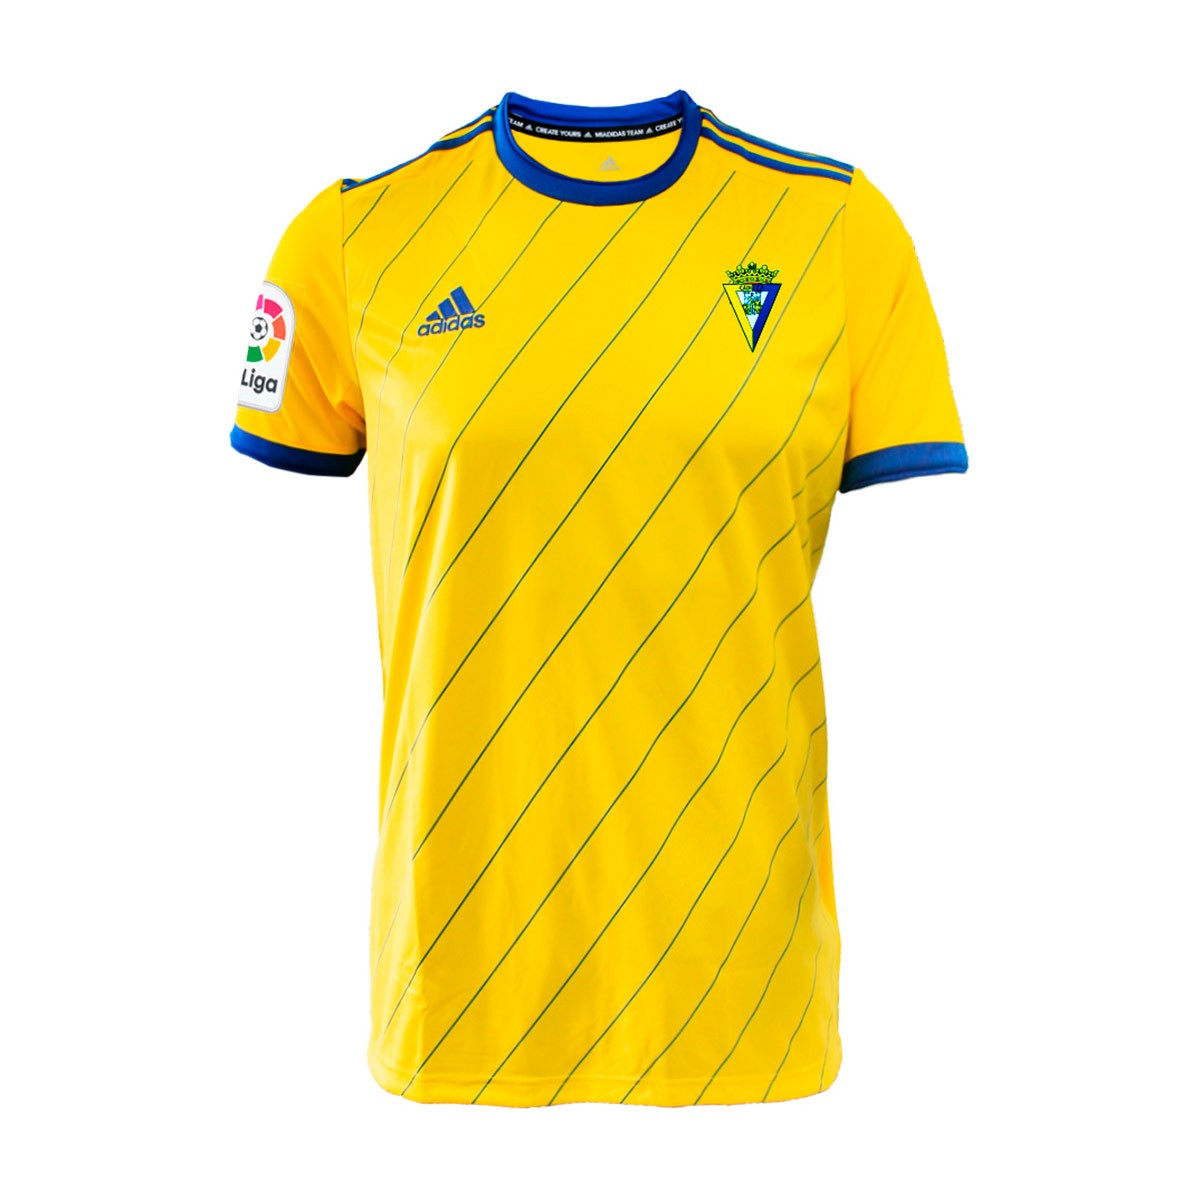 41cd44059 Jersey adidas Cadiz CF 2018-2019 Home Yellow - Football store Fútbol ...